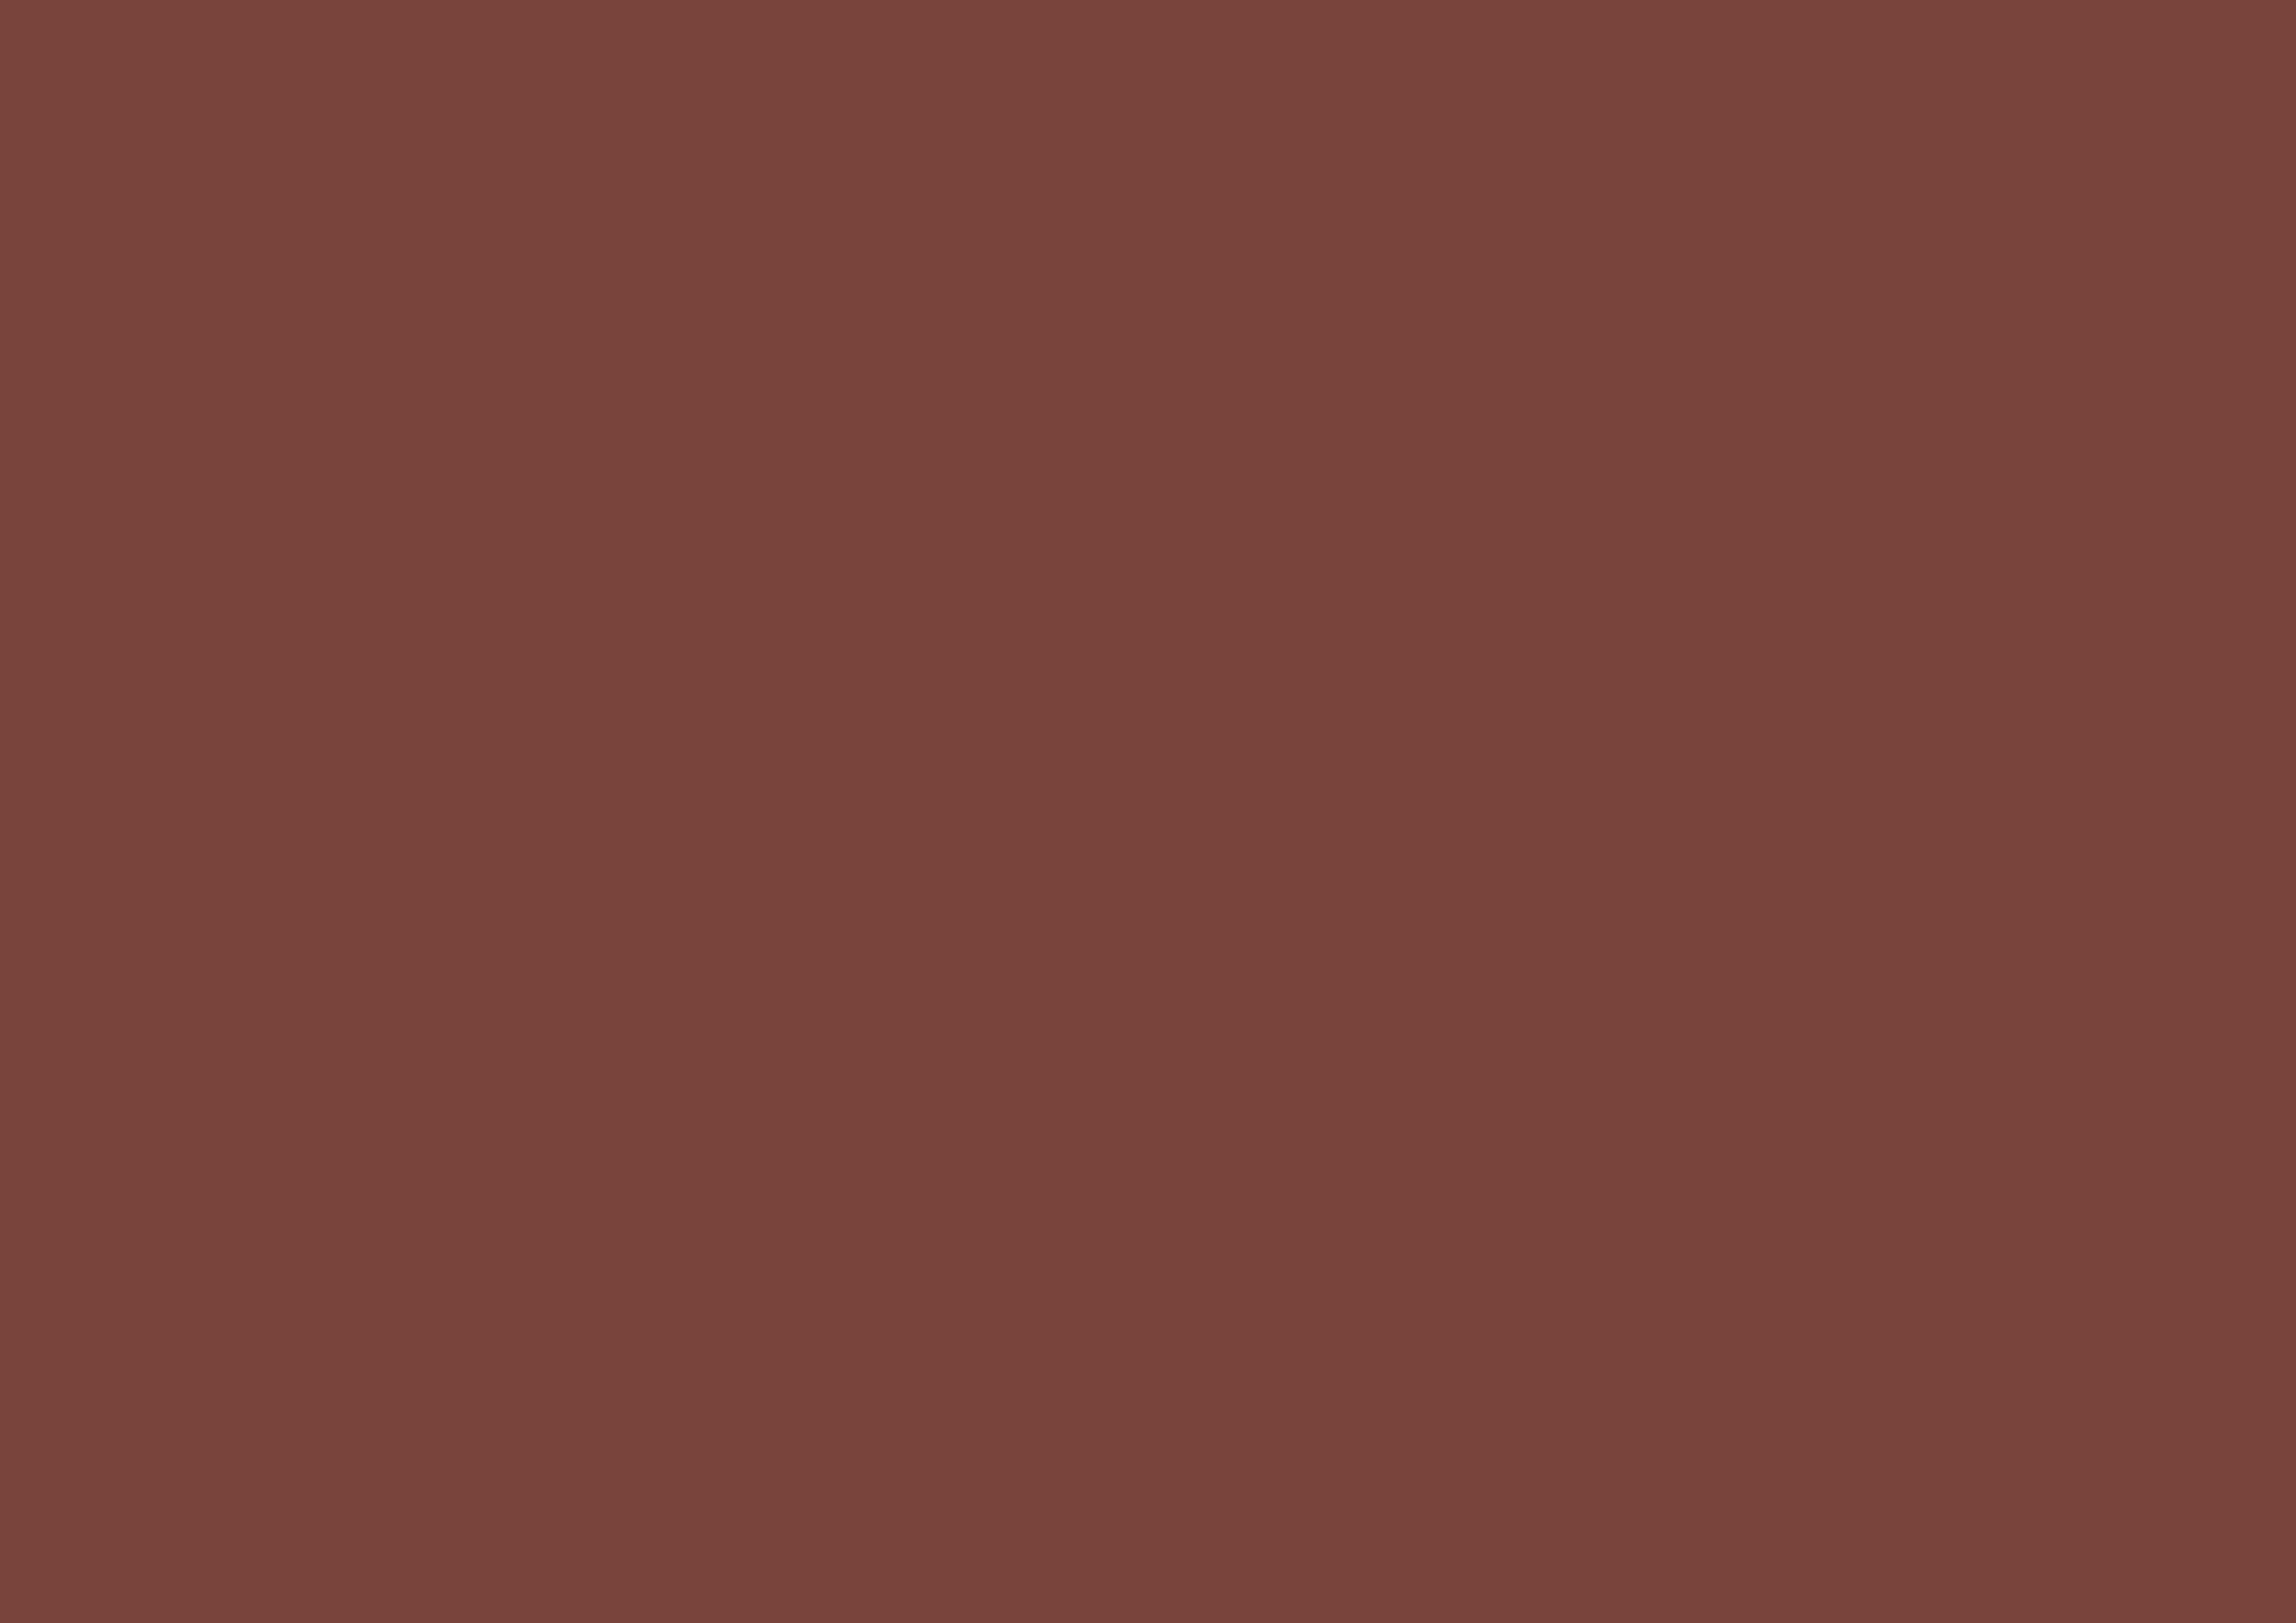 3508x2480 Medium Tuscan Red Solid Color Background